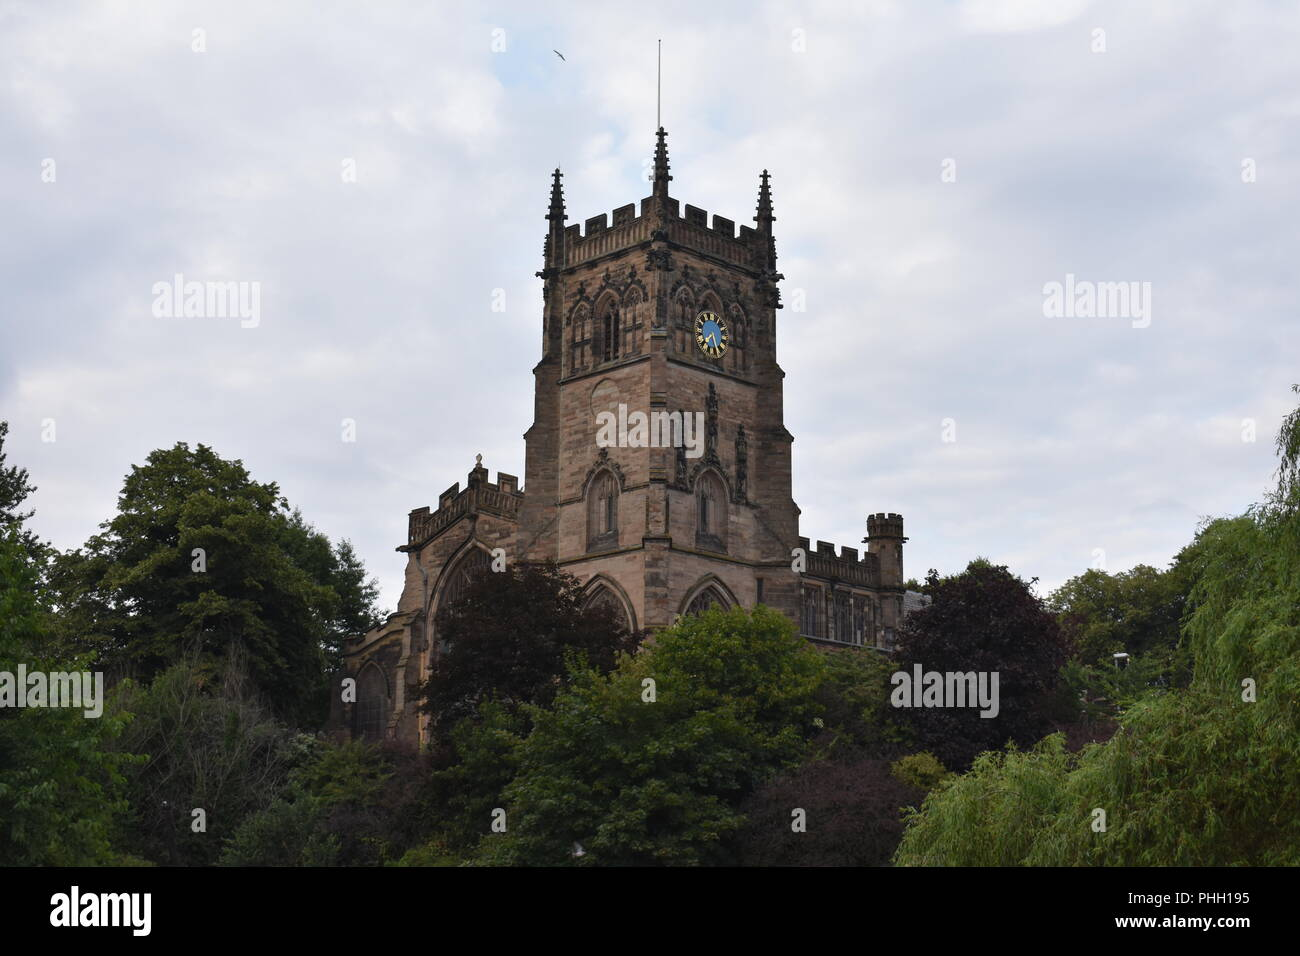 St Mary and All Saints' Church, Kidderminster. Against a cloudy sky, with trees in the foreground. - Stock Image